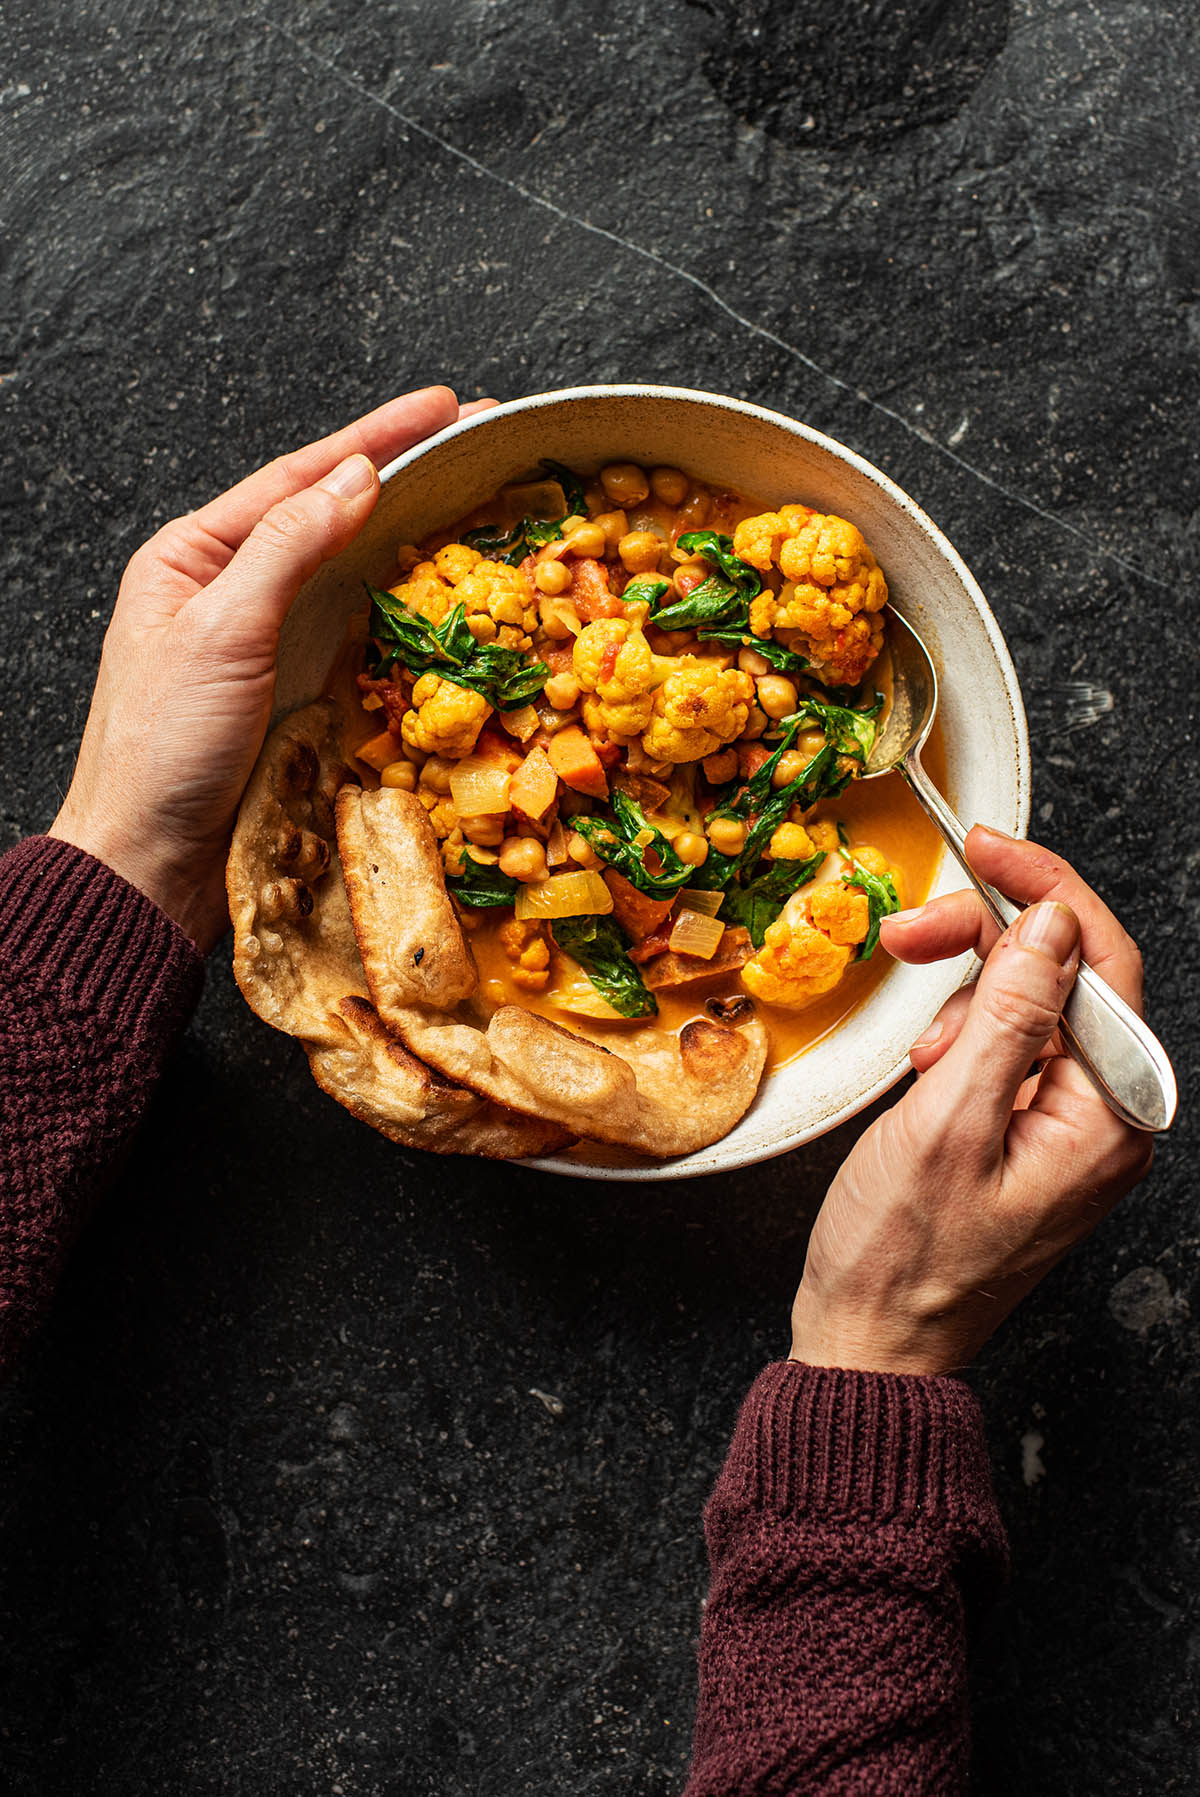 Woman's hands lifting a spoon in the curry.